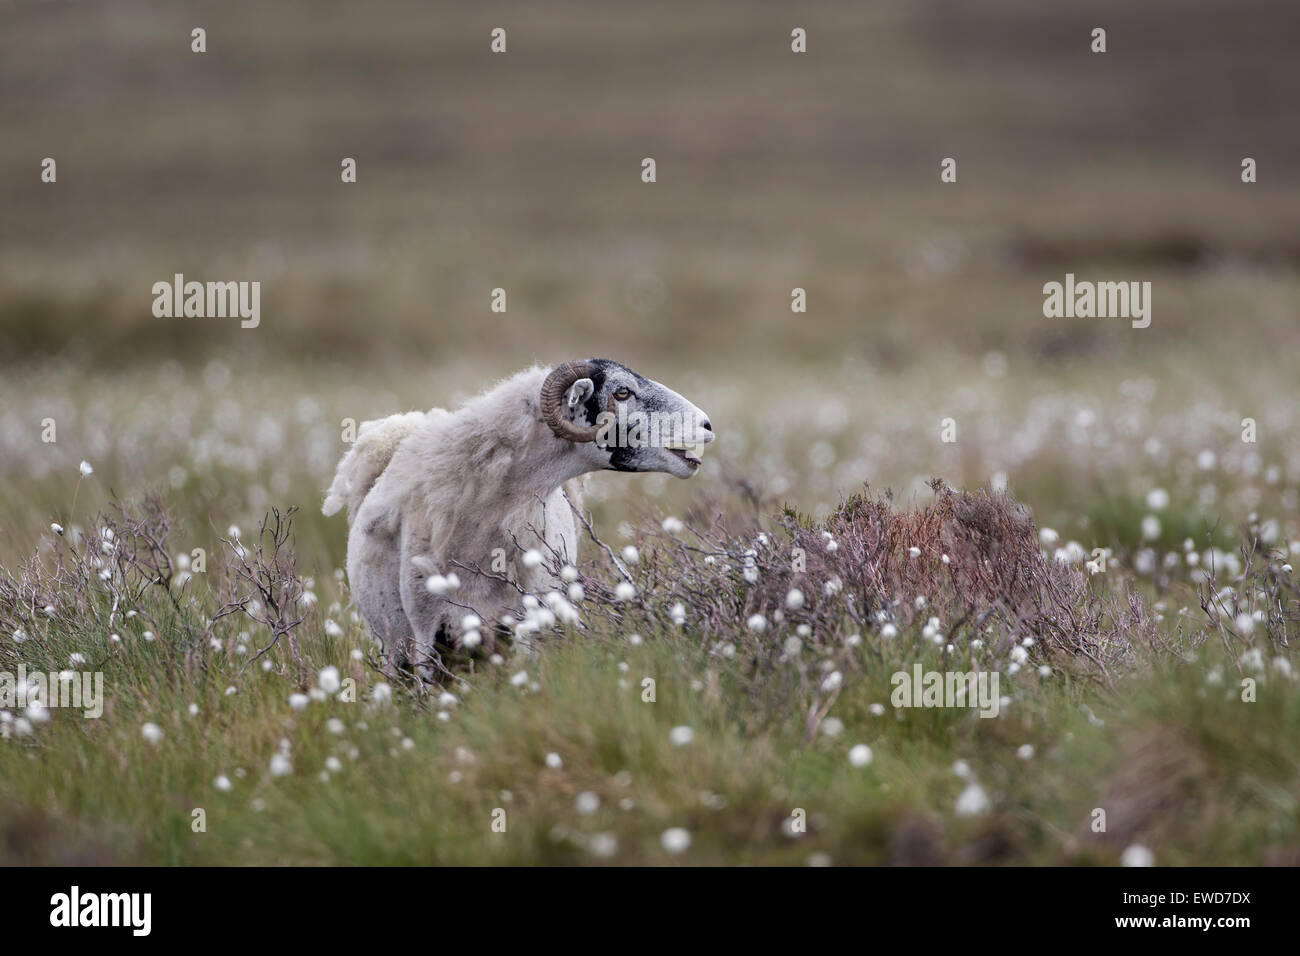 Ram Ovis Aries male sheep with horns bleating on rough moorland pasture amid cotton grass - Stock Image